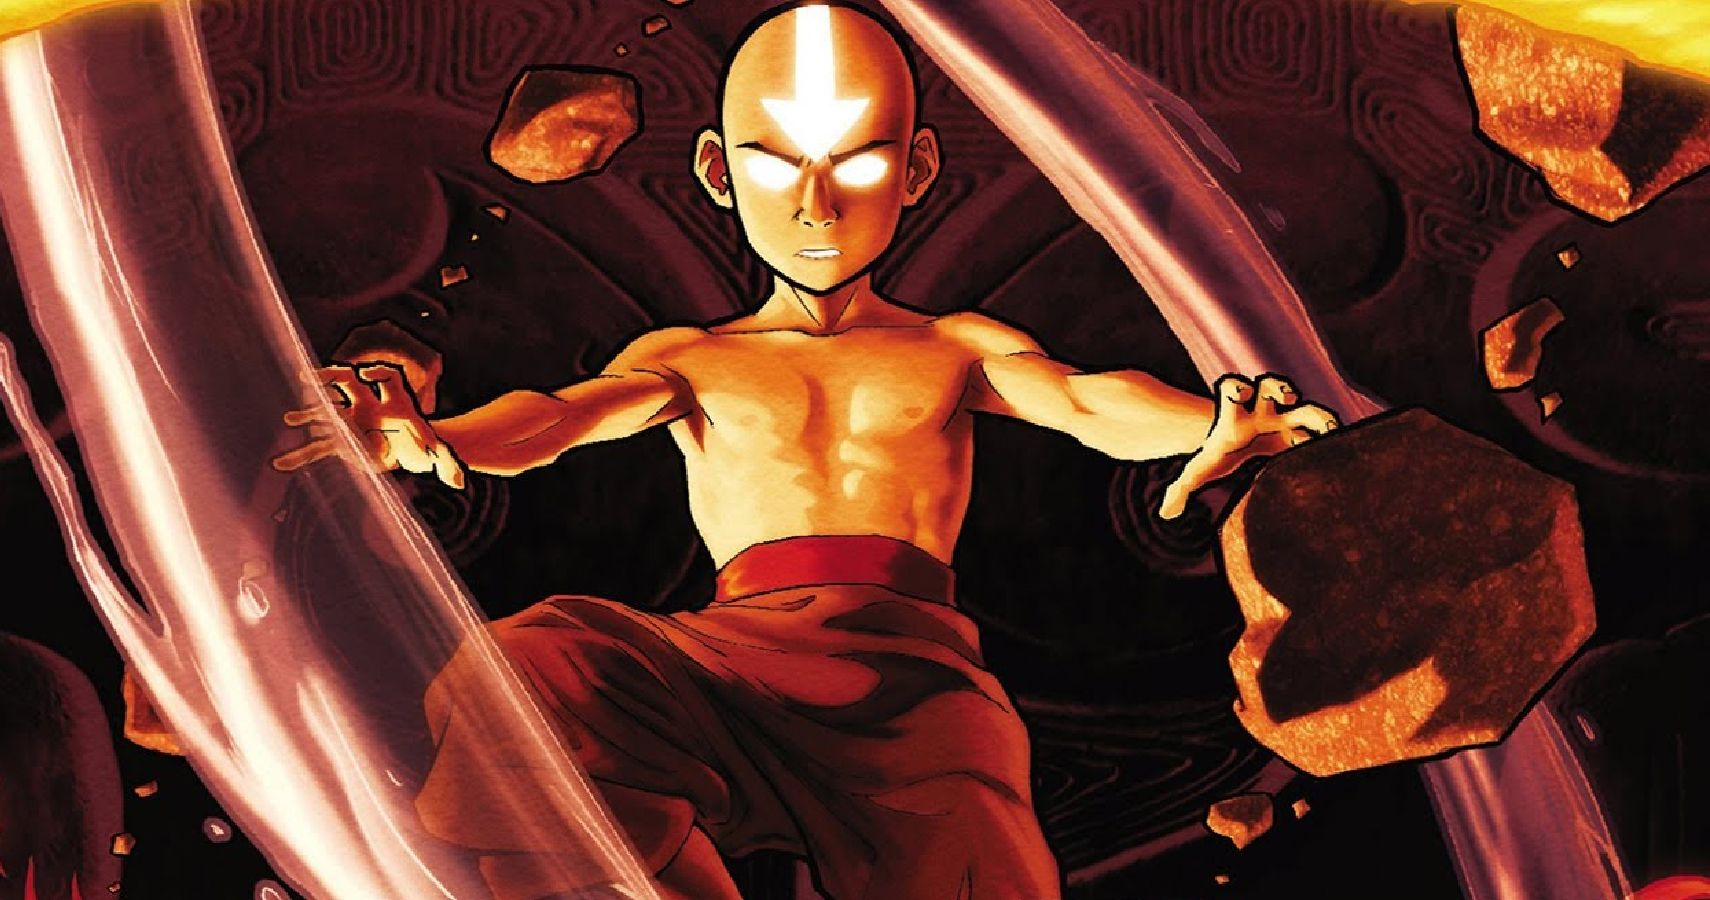 Crazy Things You Never Knew About Avatar: The Last Airbender